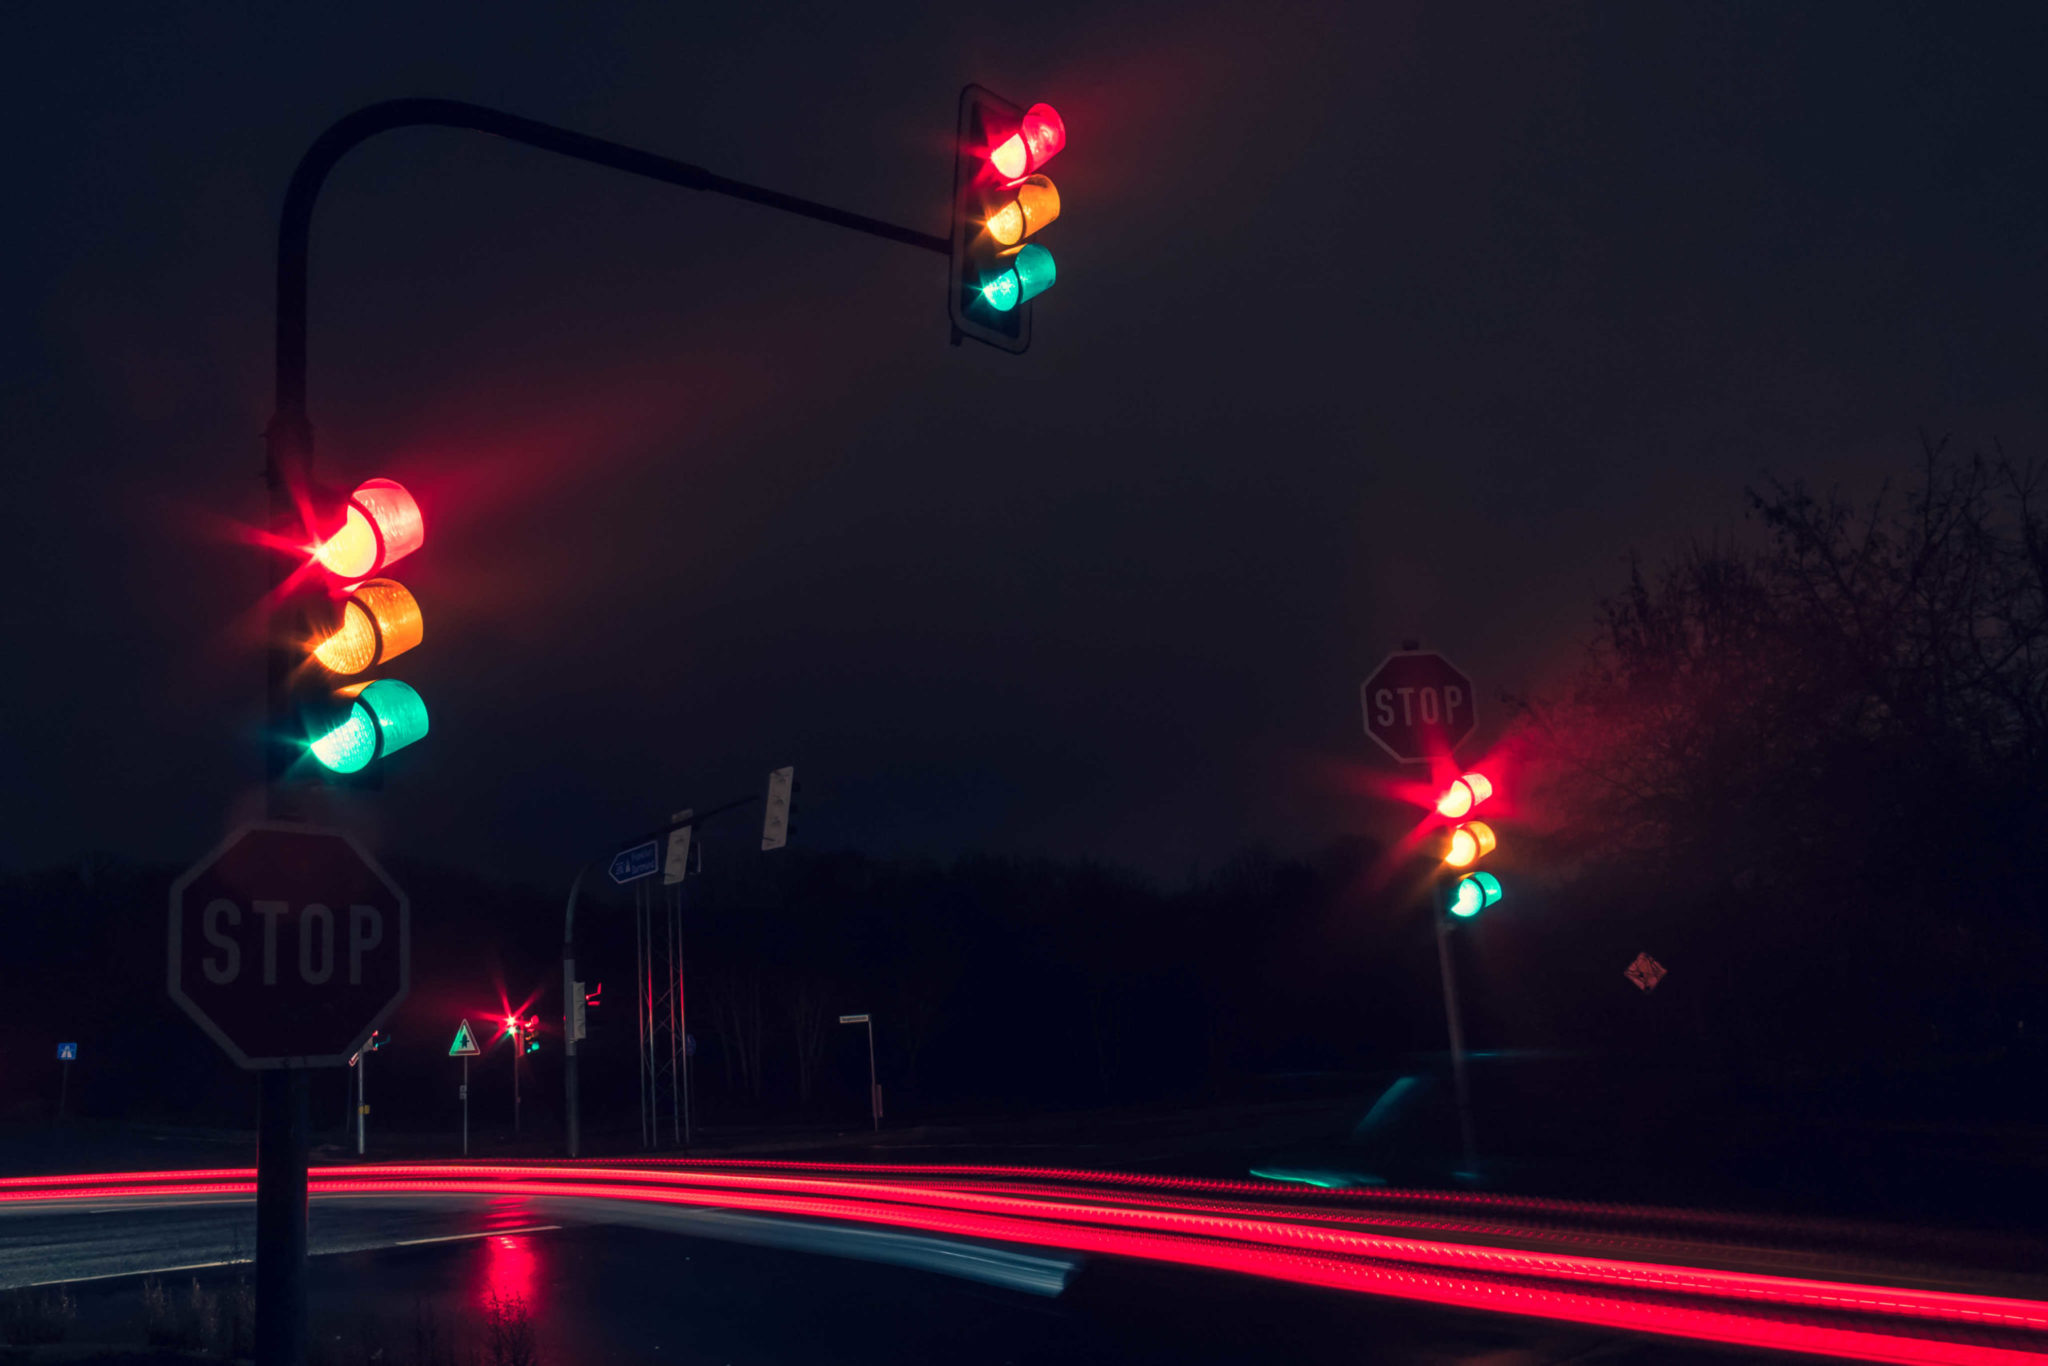 traffic lights at night with lots of traffic zooming past.